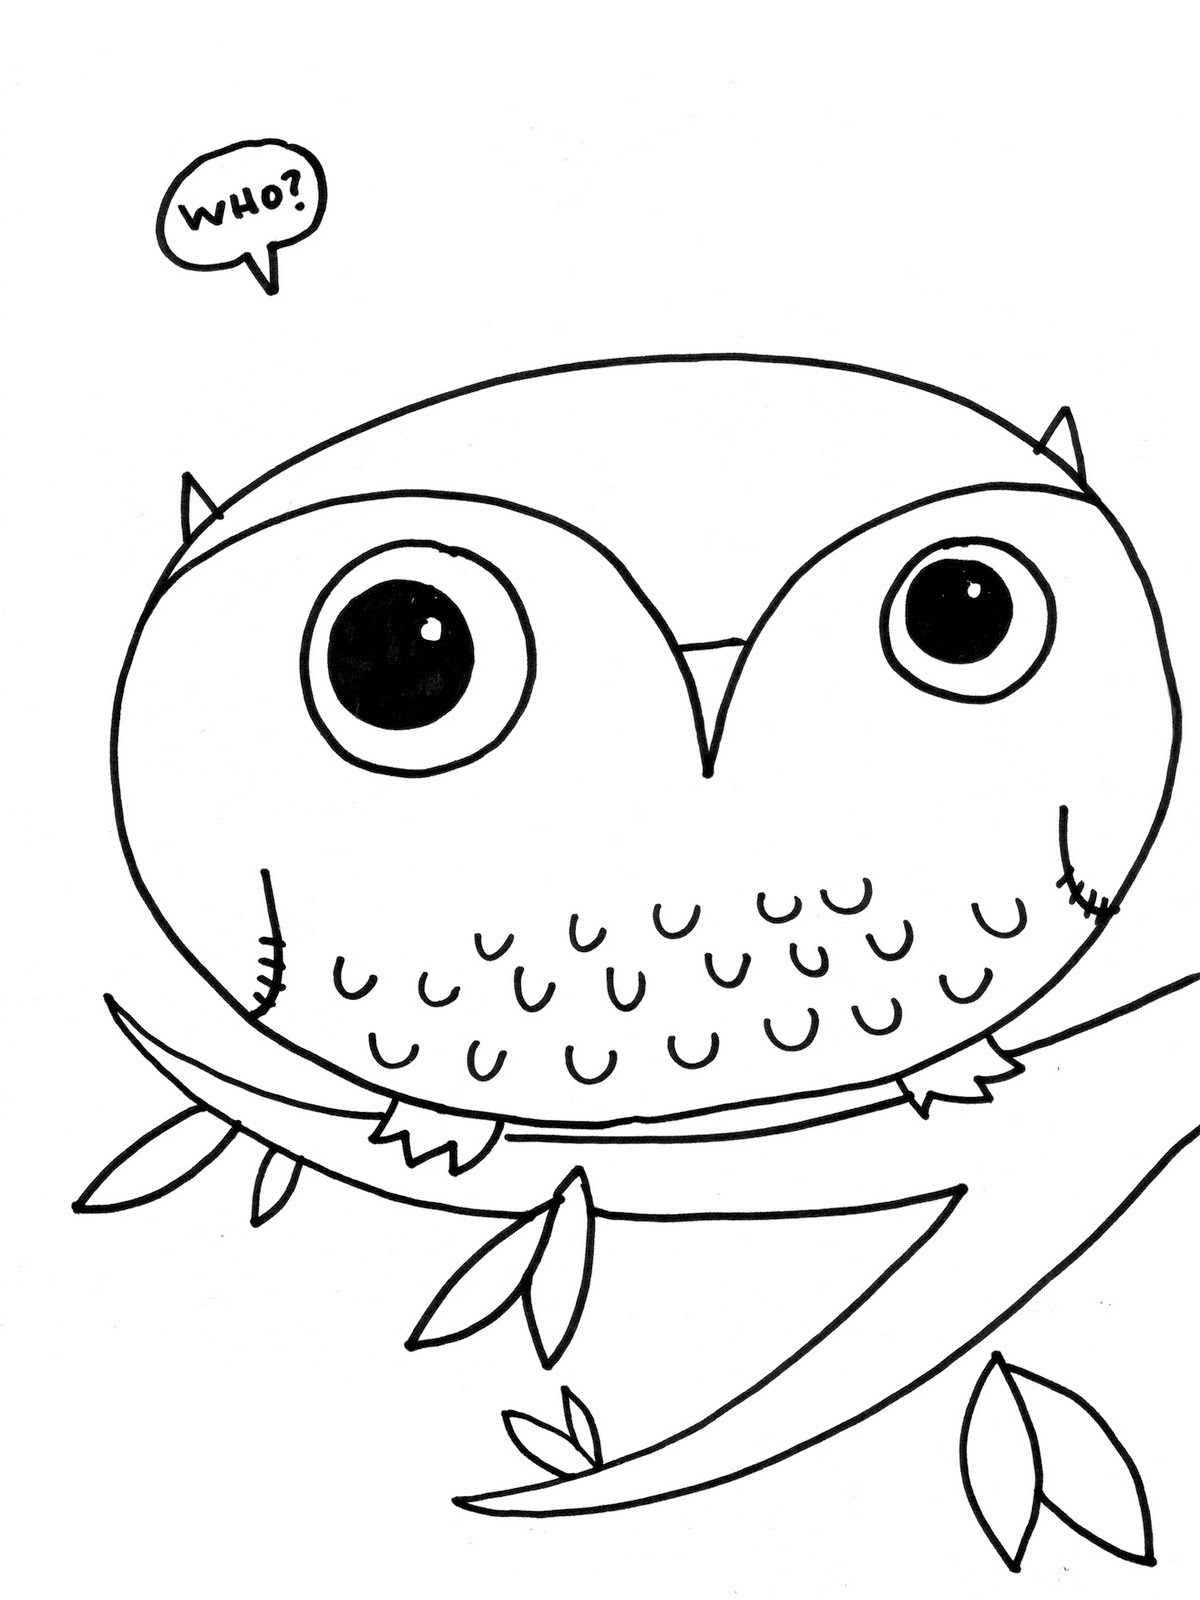 easy cute owl coloring pages easy cute owl drawing at getdrawings free download pages easy owl coloring cute